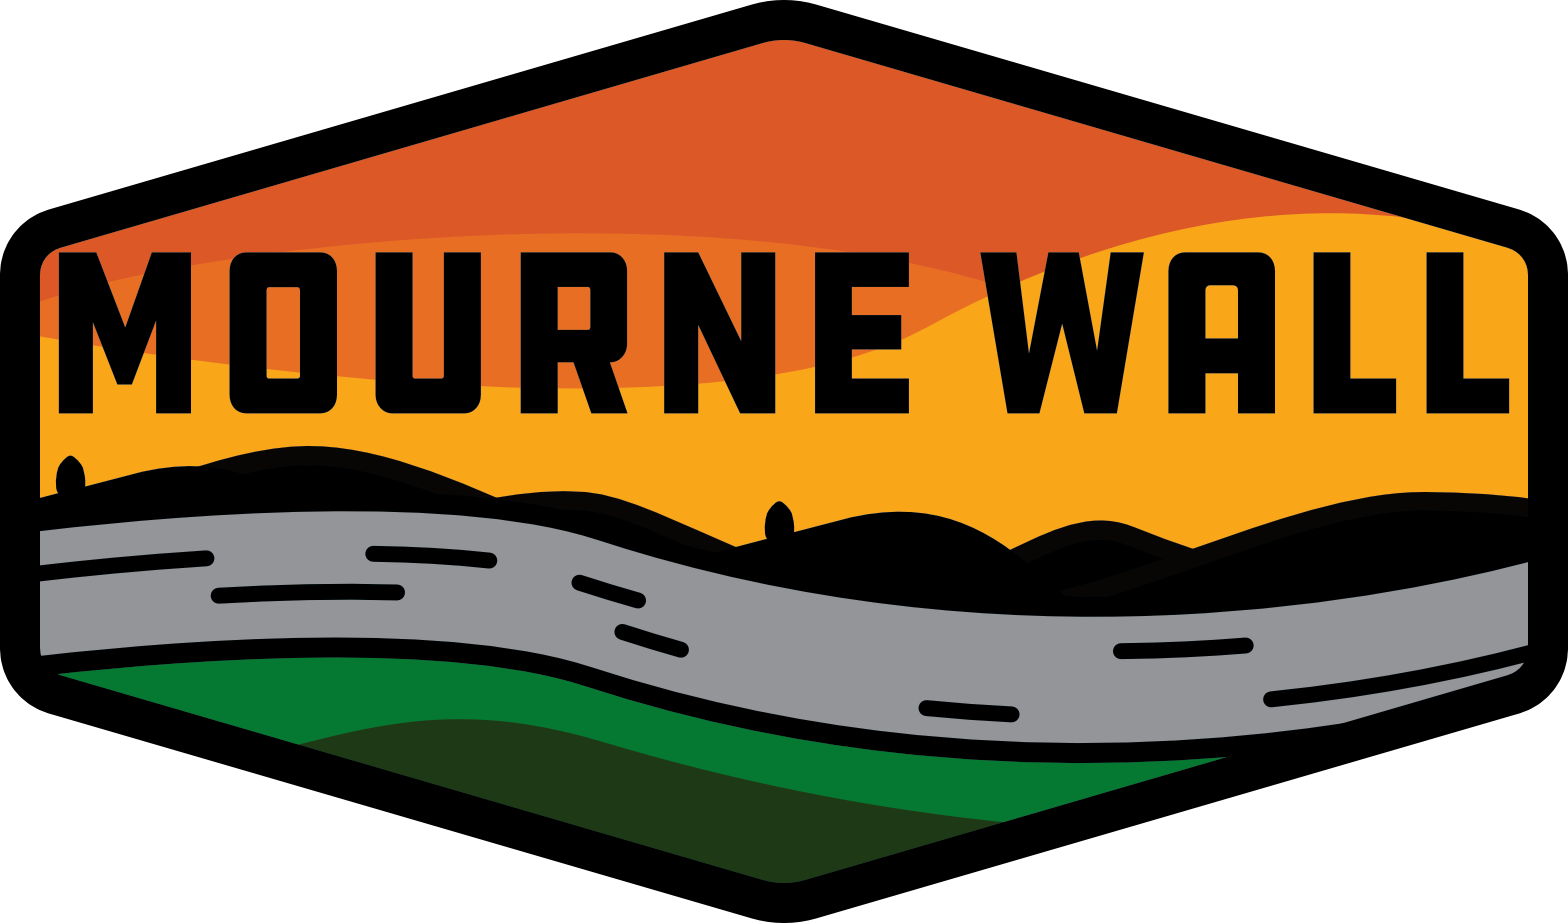 Mourne_Patch_CMYK_PNG.png